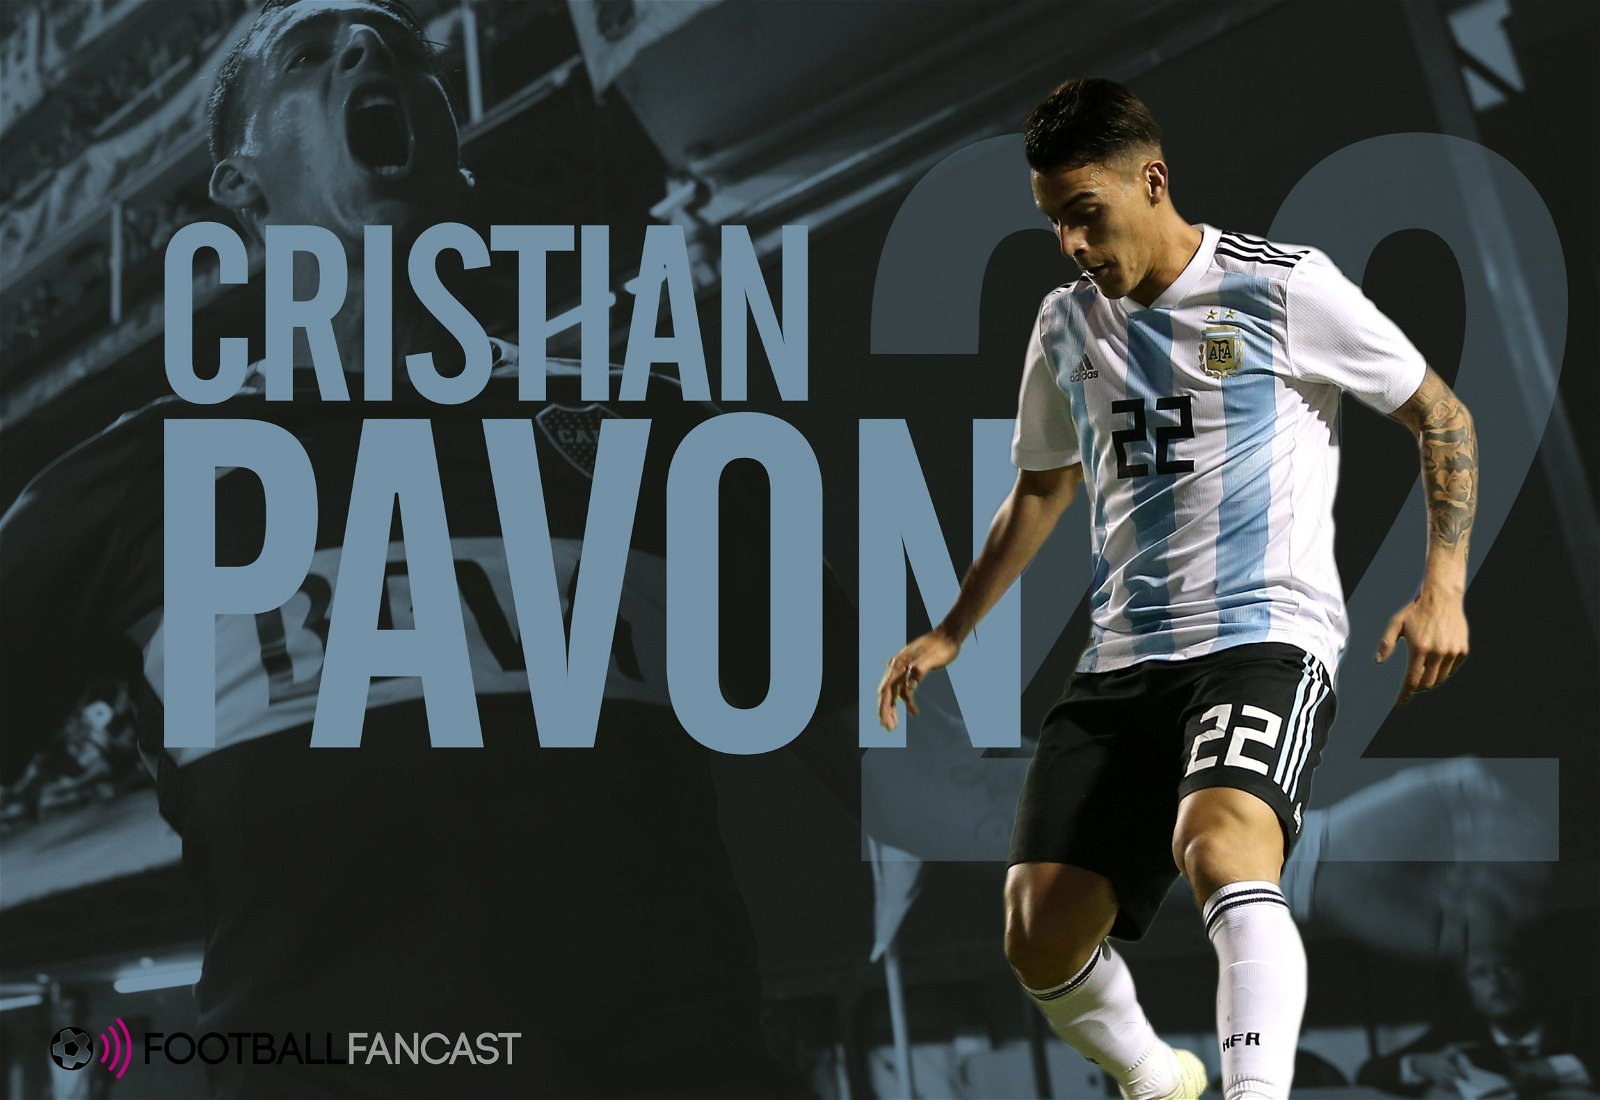 Player Zone: Cristian Pavon has all the attributes to become a star, but is he what Arsenal really need right now?